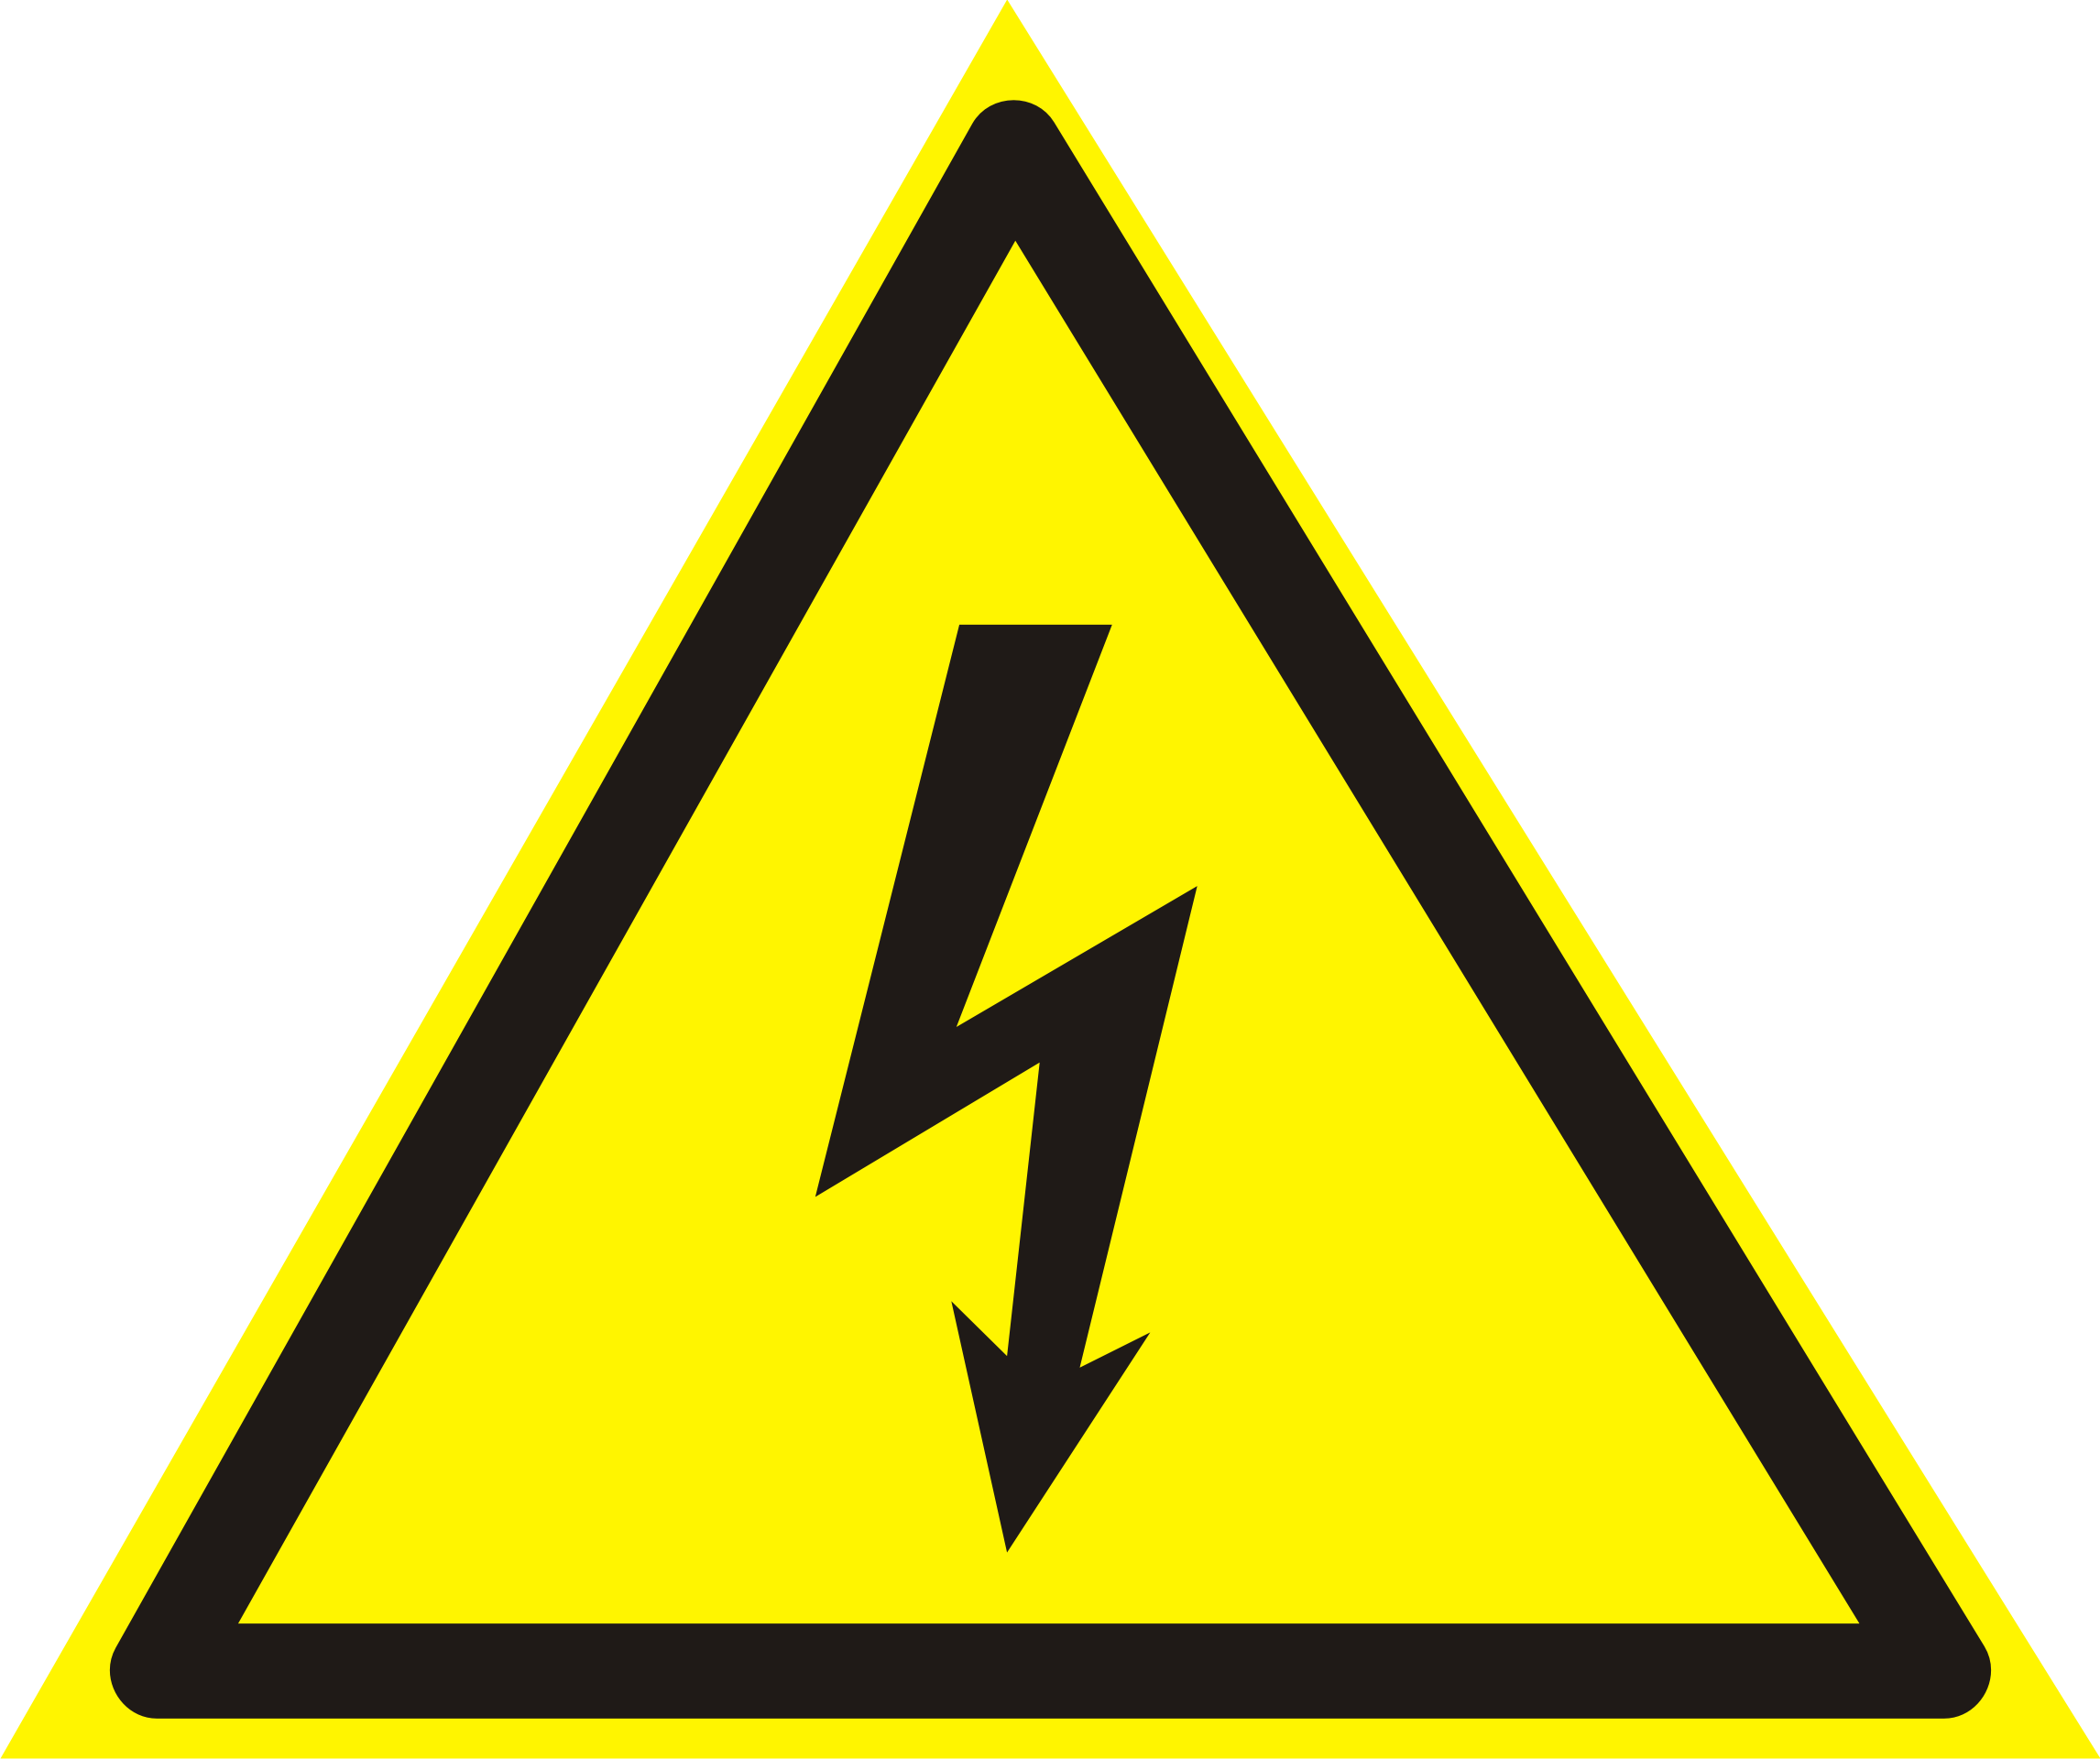 Electrician vector electrical symbol. Symbols warning attention